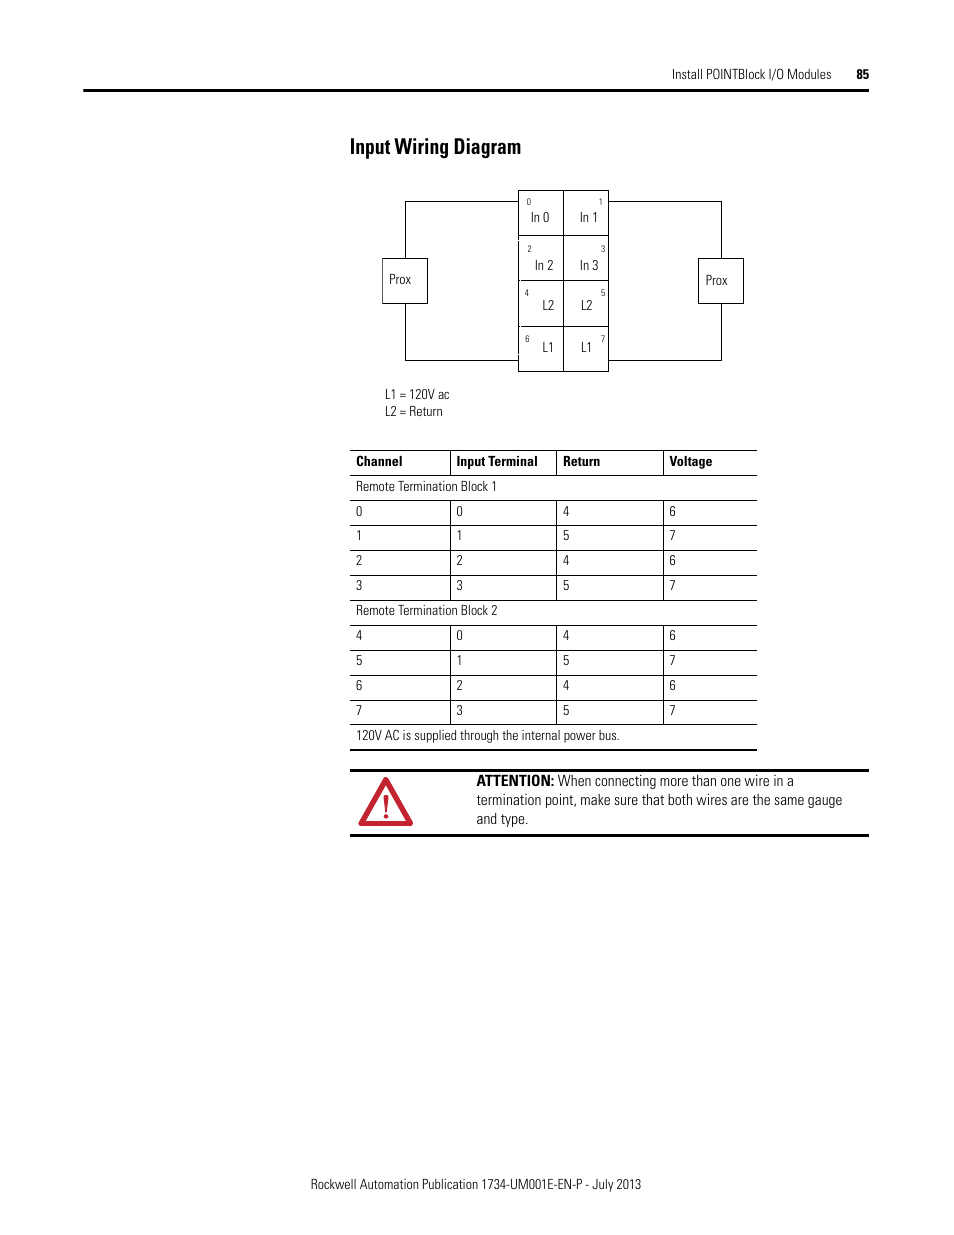 i o module wiring diagram input wiring diagram | rockwell automation 1734-xxxx point ... #10